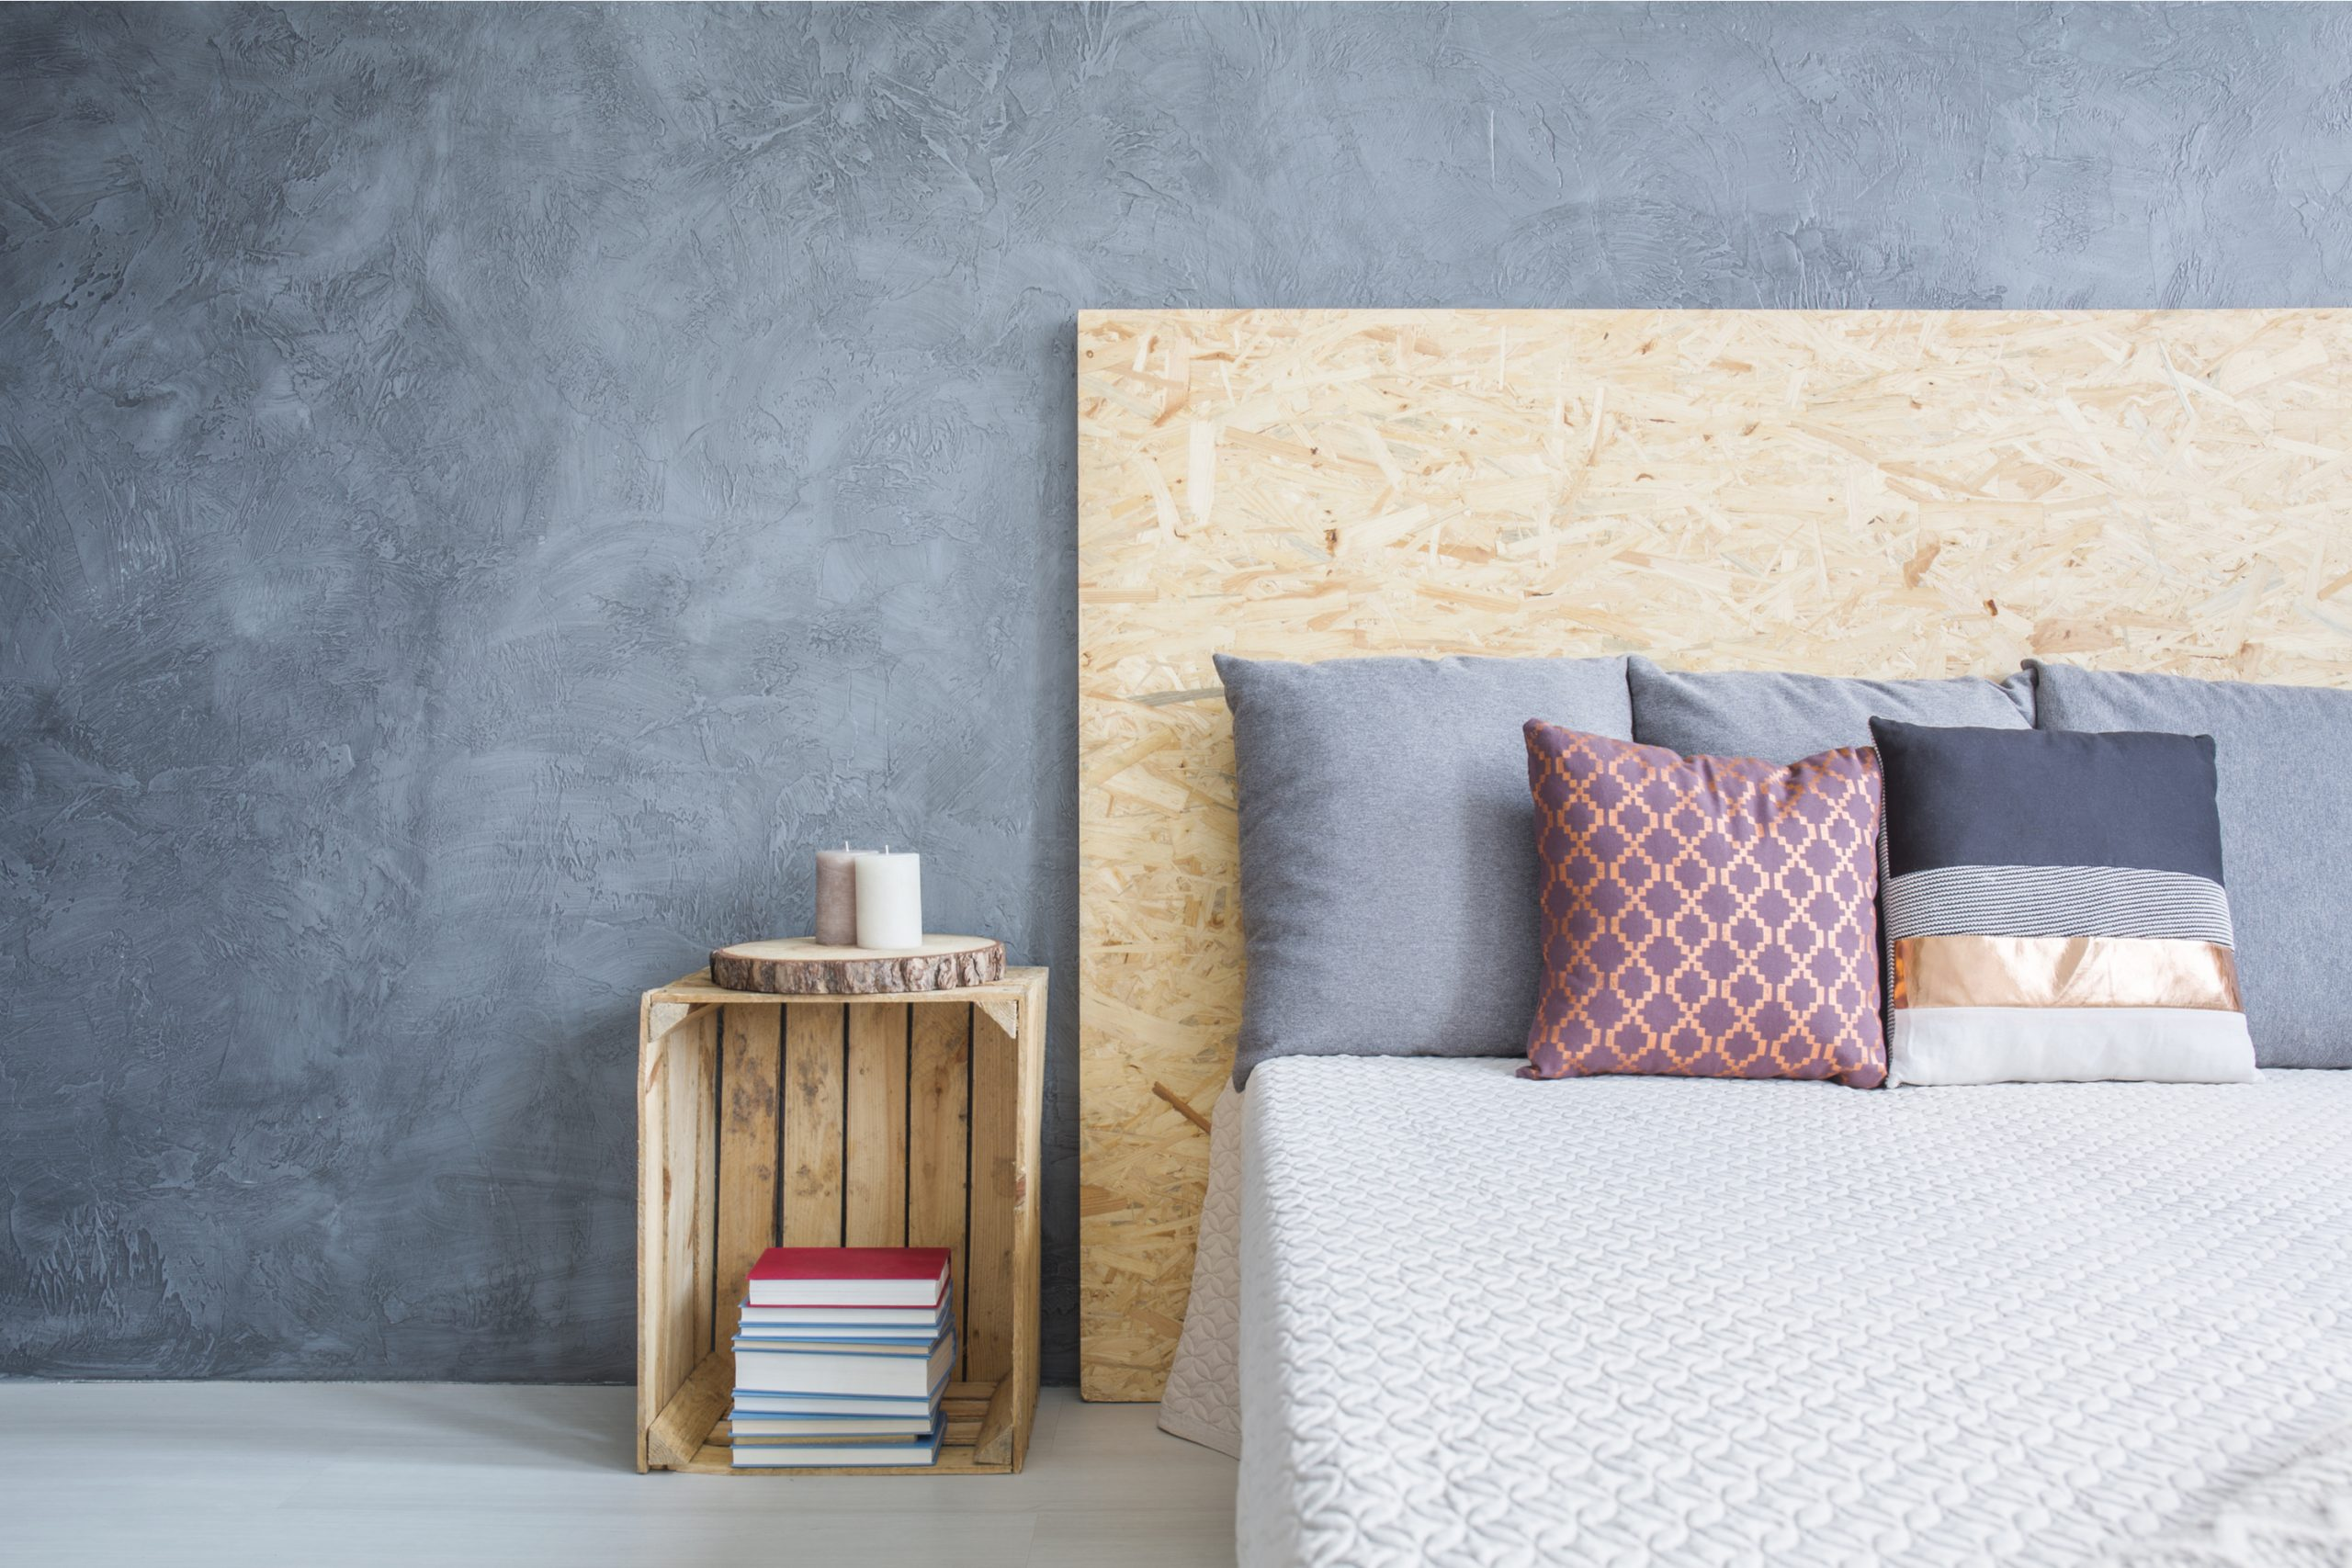 Calling all DIY lovers!!! These DIY headboard ideas will certainly get you excited about changing up your room. Check them out!